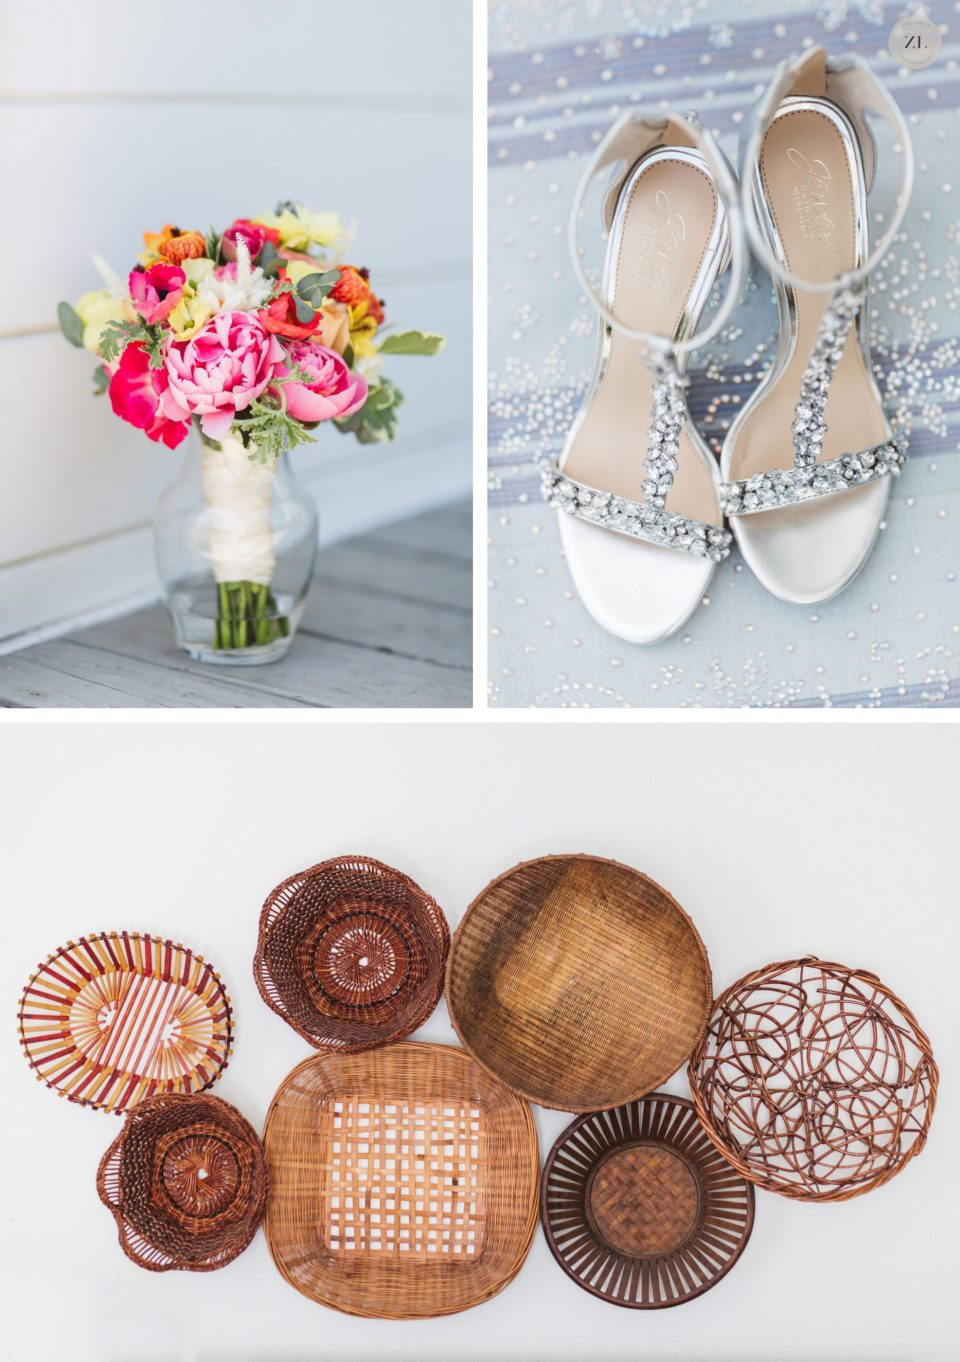 details at cornerstone sonoma wedding by Zoe Larkin Photography